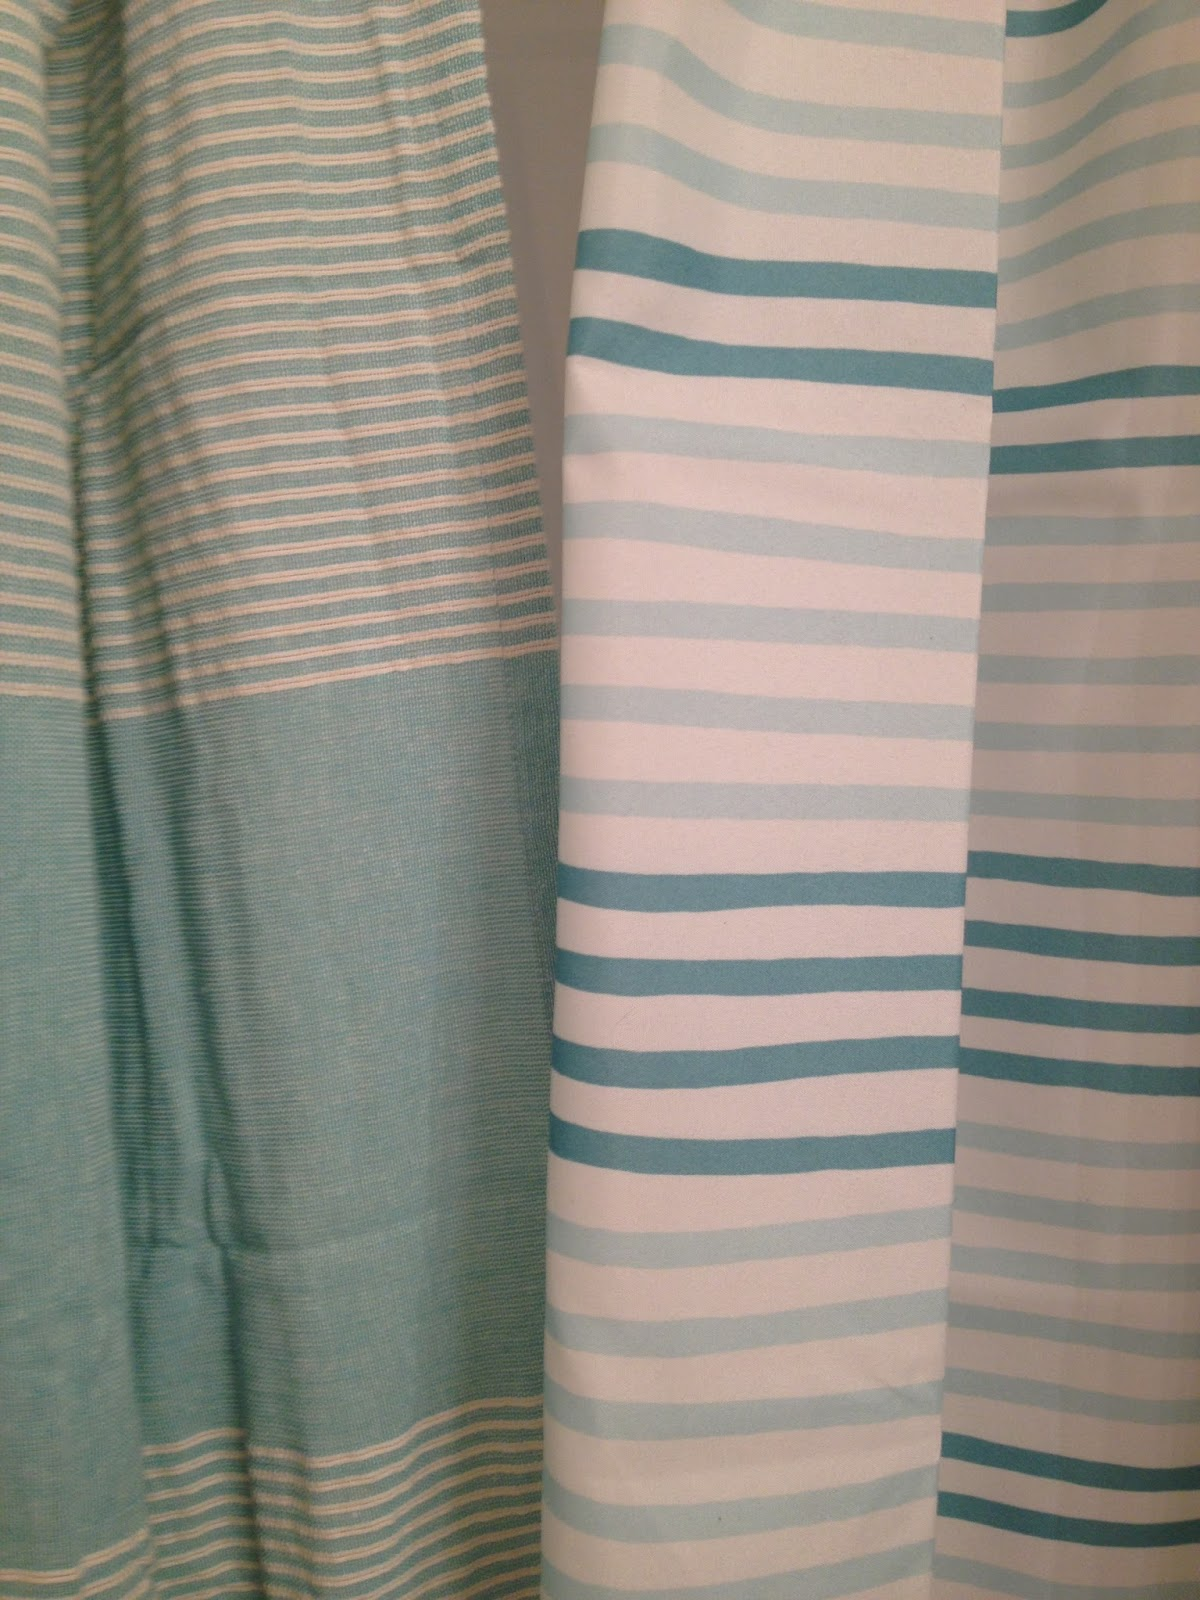 Linen Stripe Shower Curtain K I S S Keep It Simple Sister Striped Aqua Shower Curtains